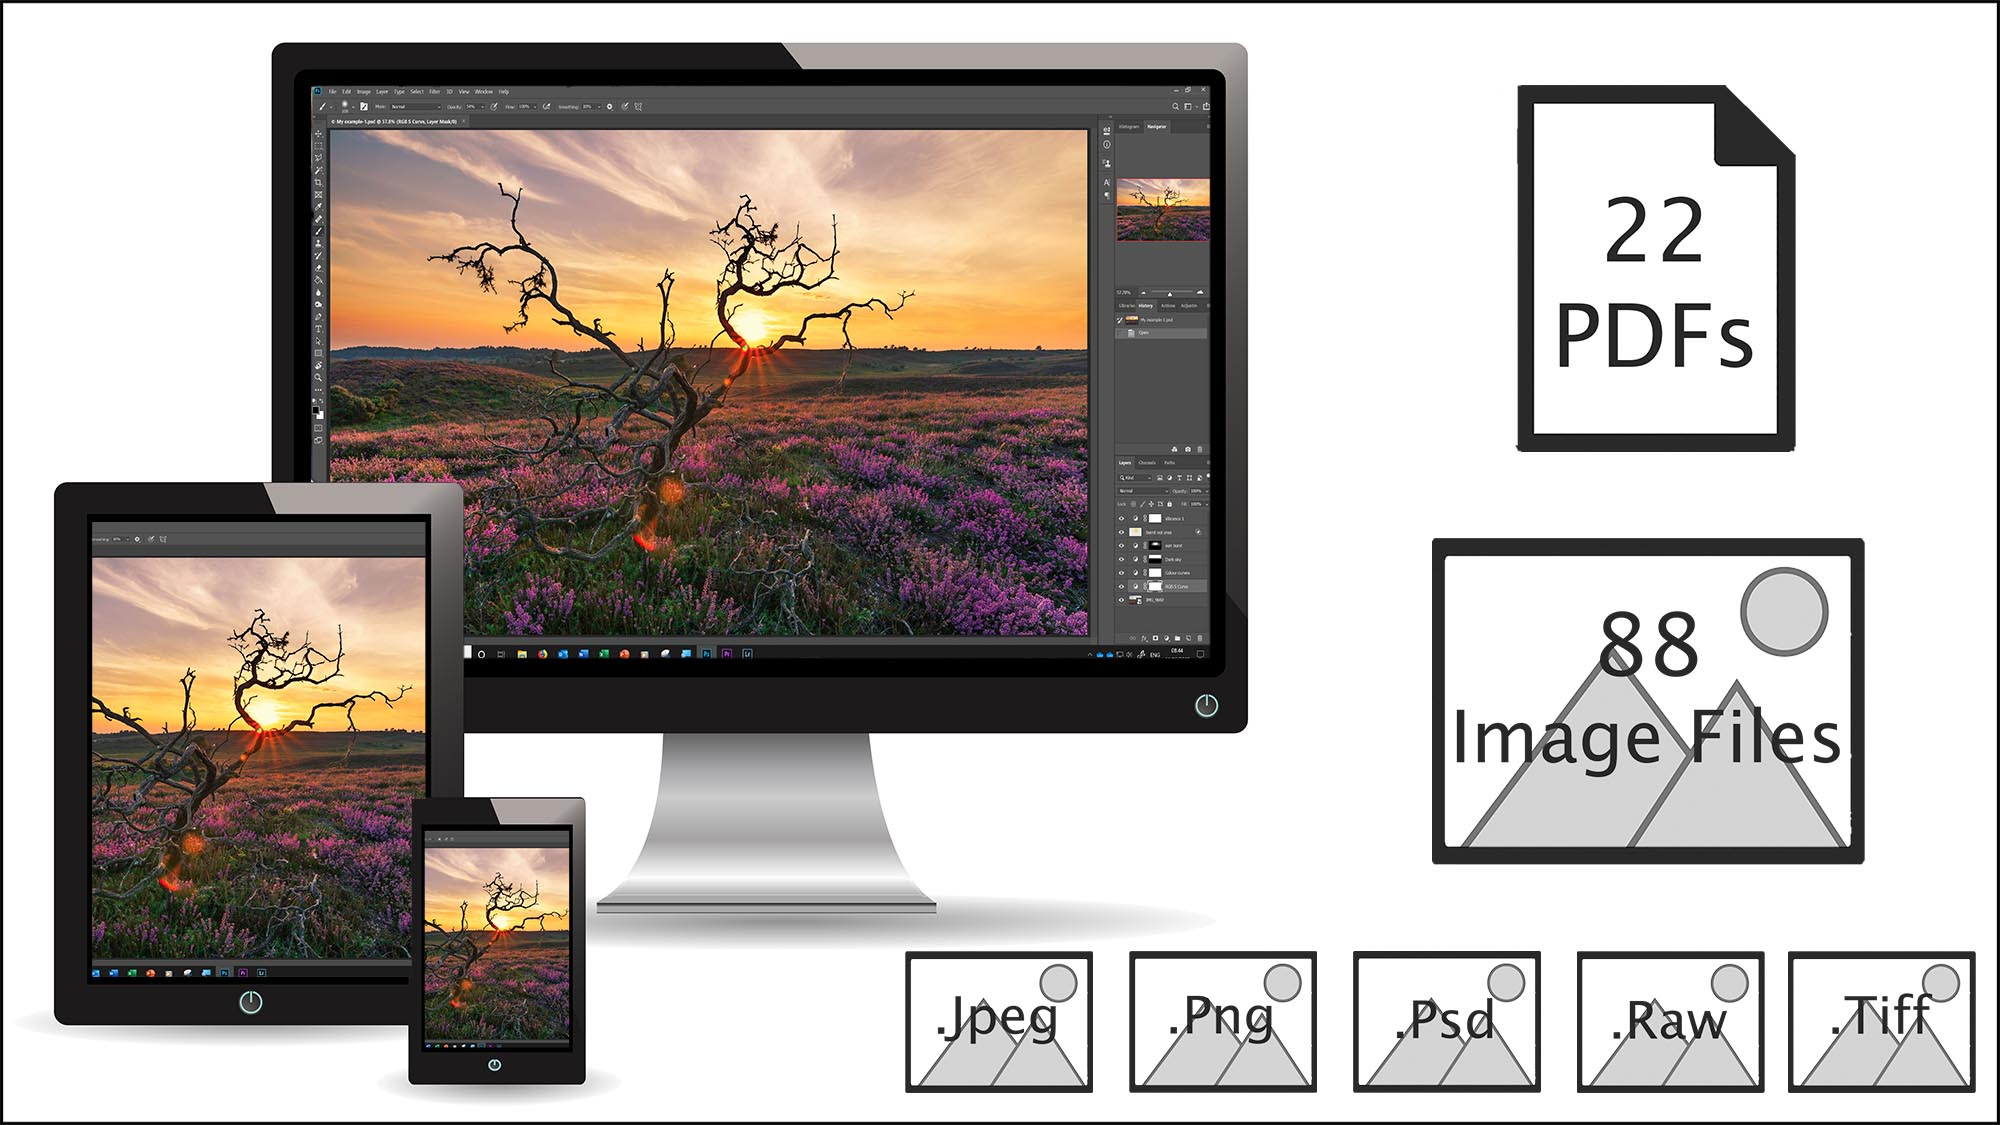 Downloadable course content - We're with you through this journey, from image to edit. Watch the videos, anywhere, anytime, download the PDFs to reinforce the knowledge learnt and use the high quality images provided to easily work along with the videos.